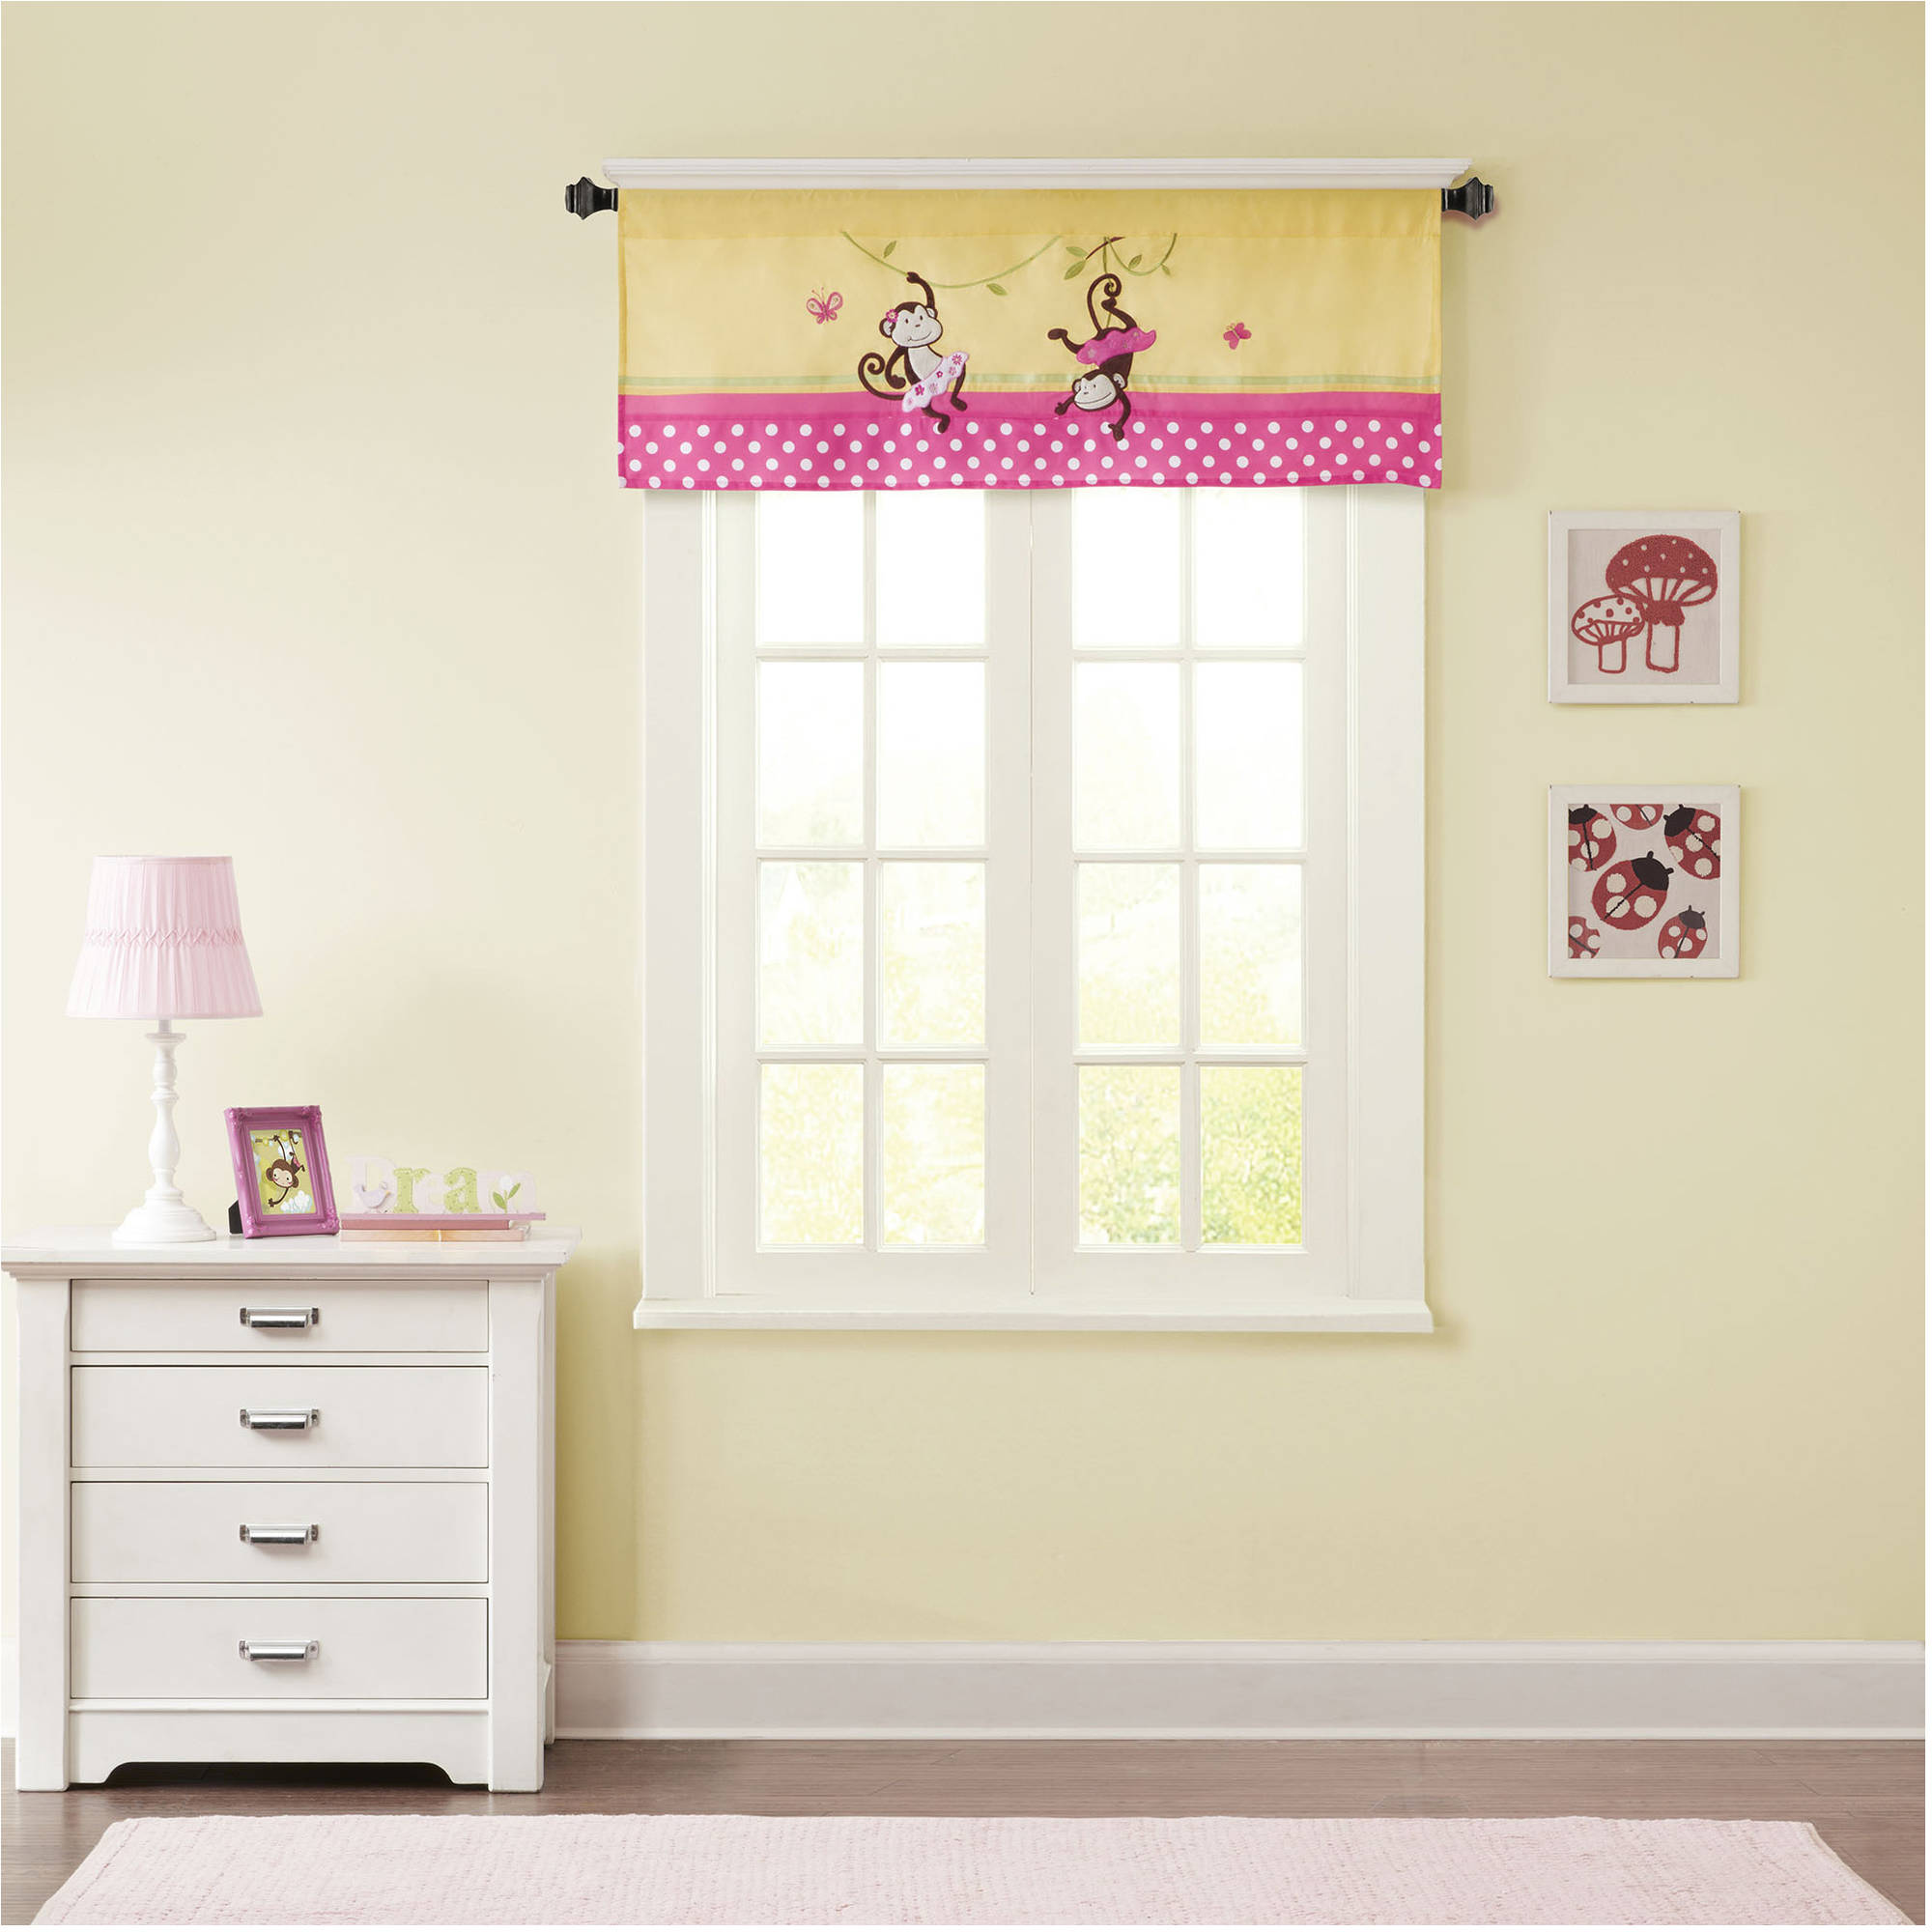 Home Essence Kids Monkey Maze Printed and Applique Valance